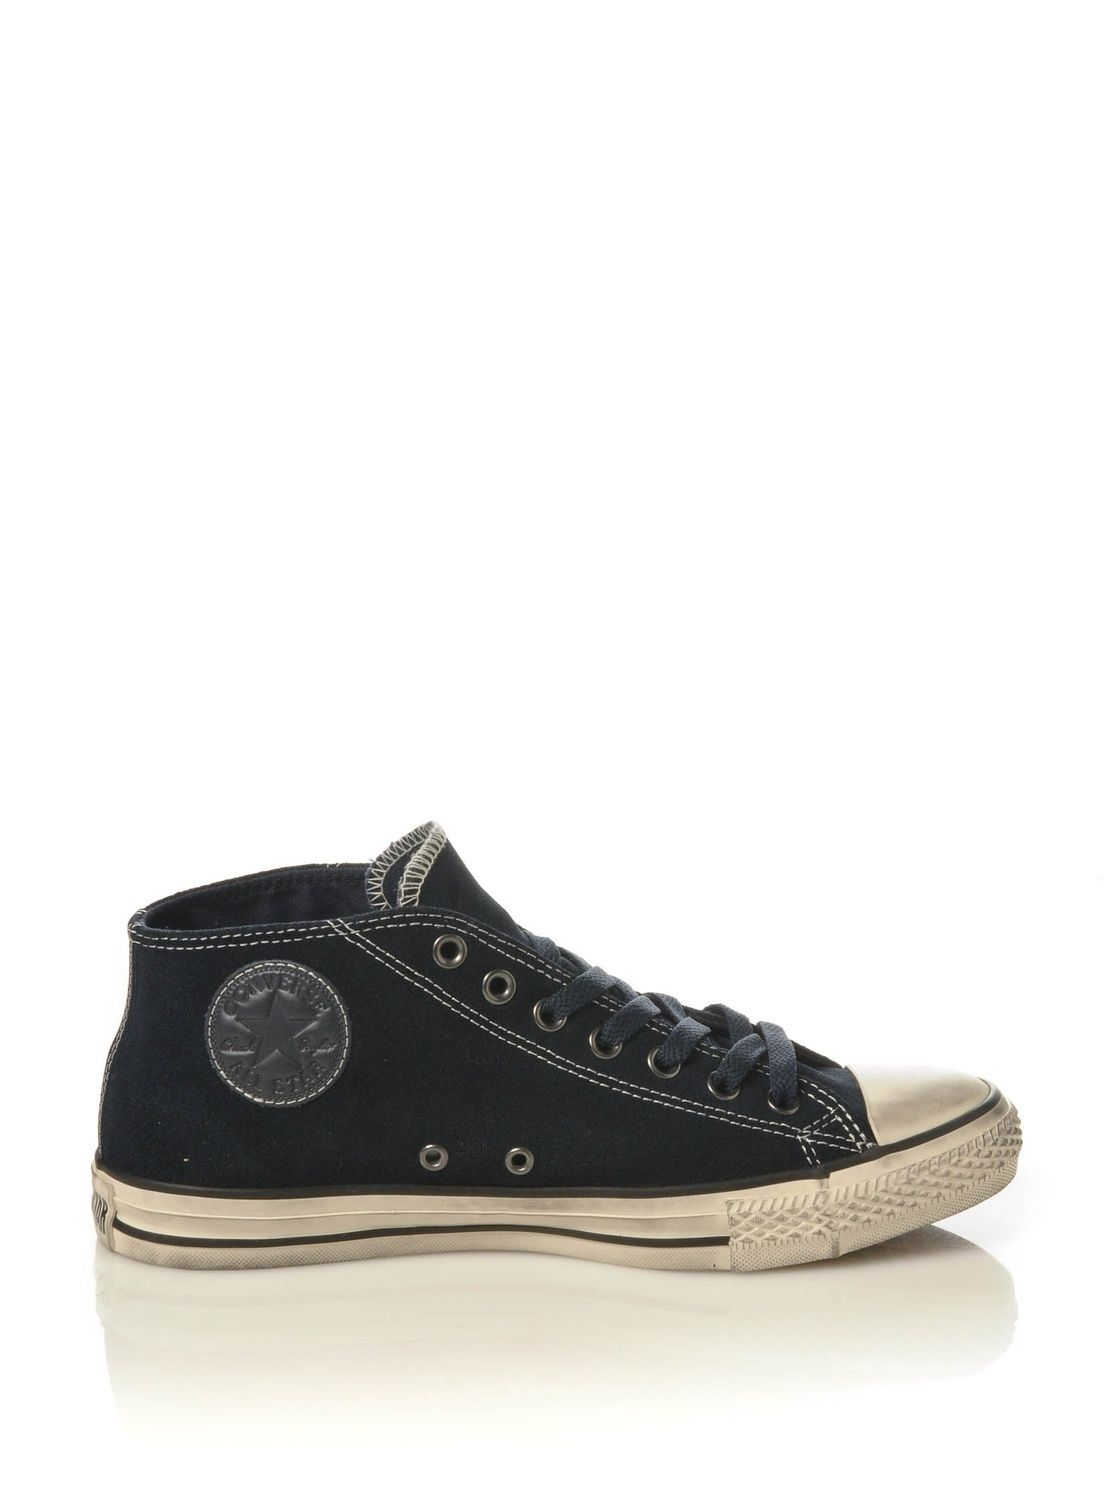 SCARPE SNEAKERS DONNA UOMO CONVERSE ALL STAR ORIGINAL CT CLEAN 127390C PELLE A/I